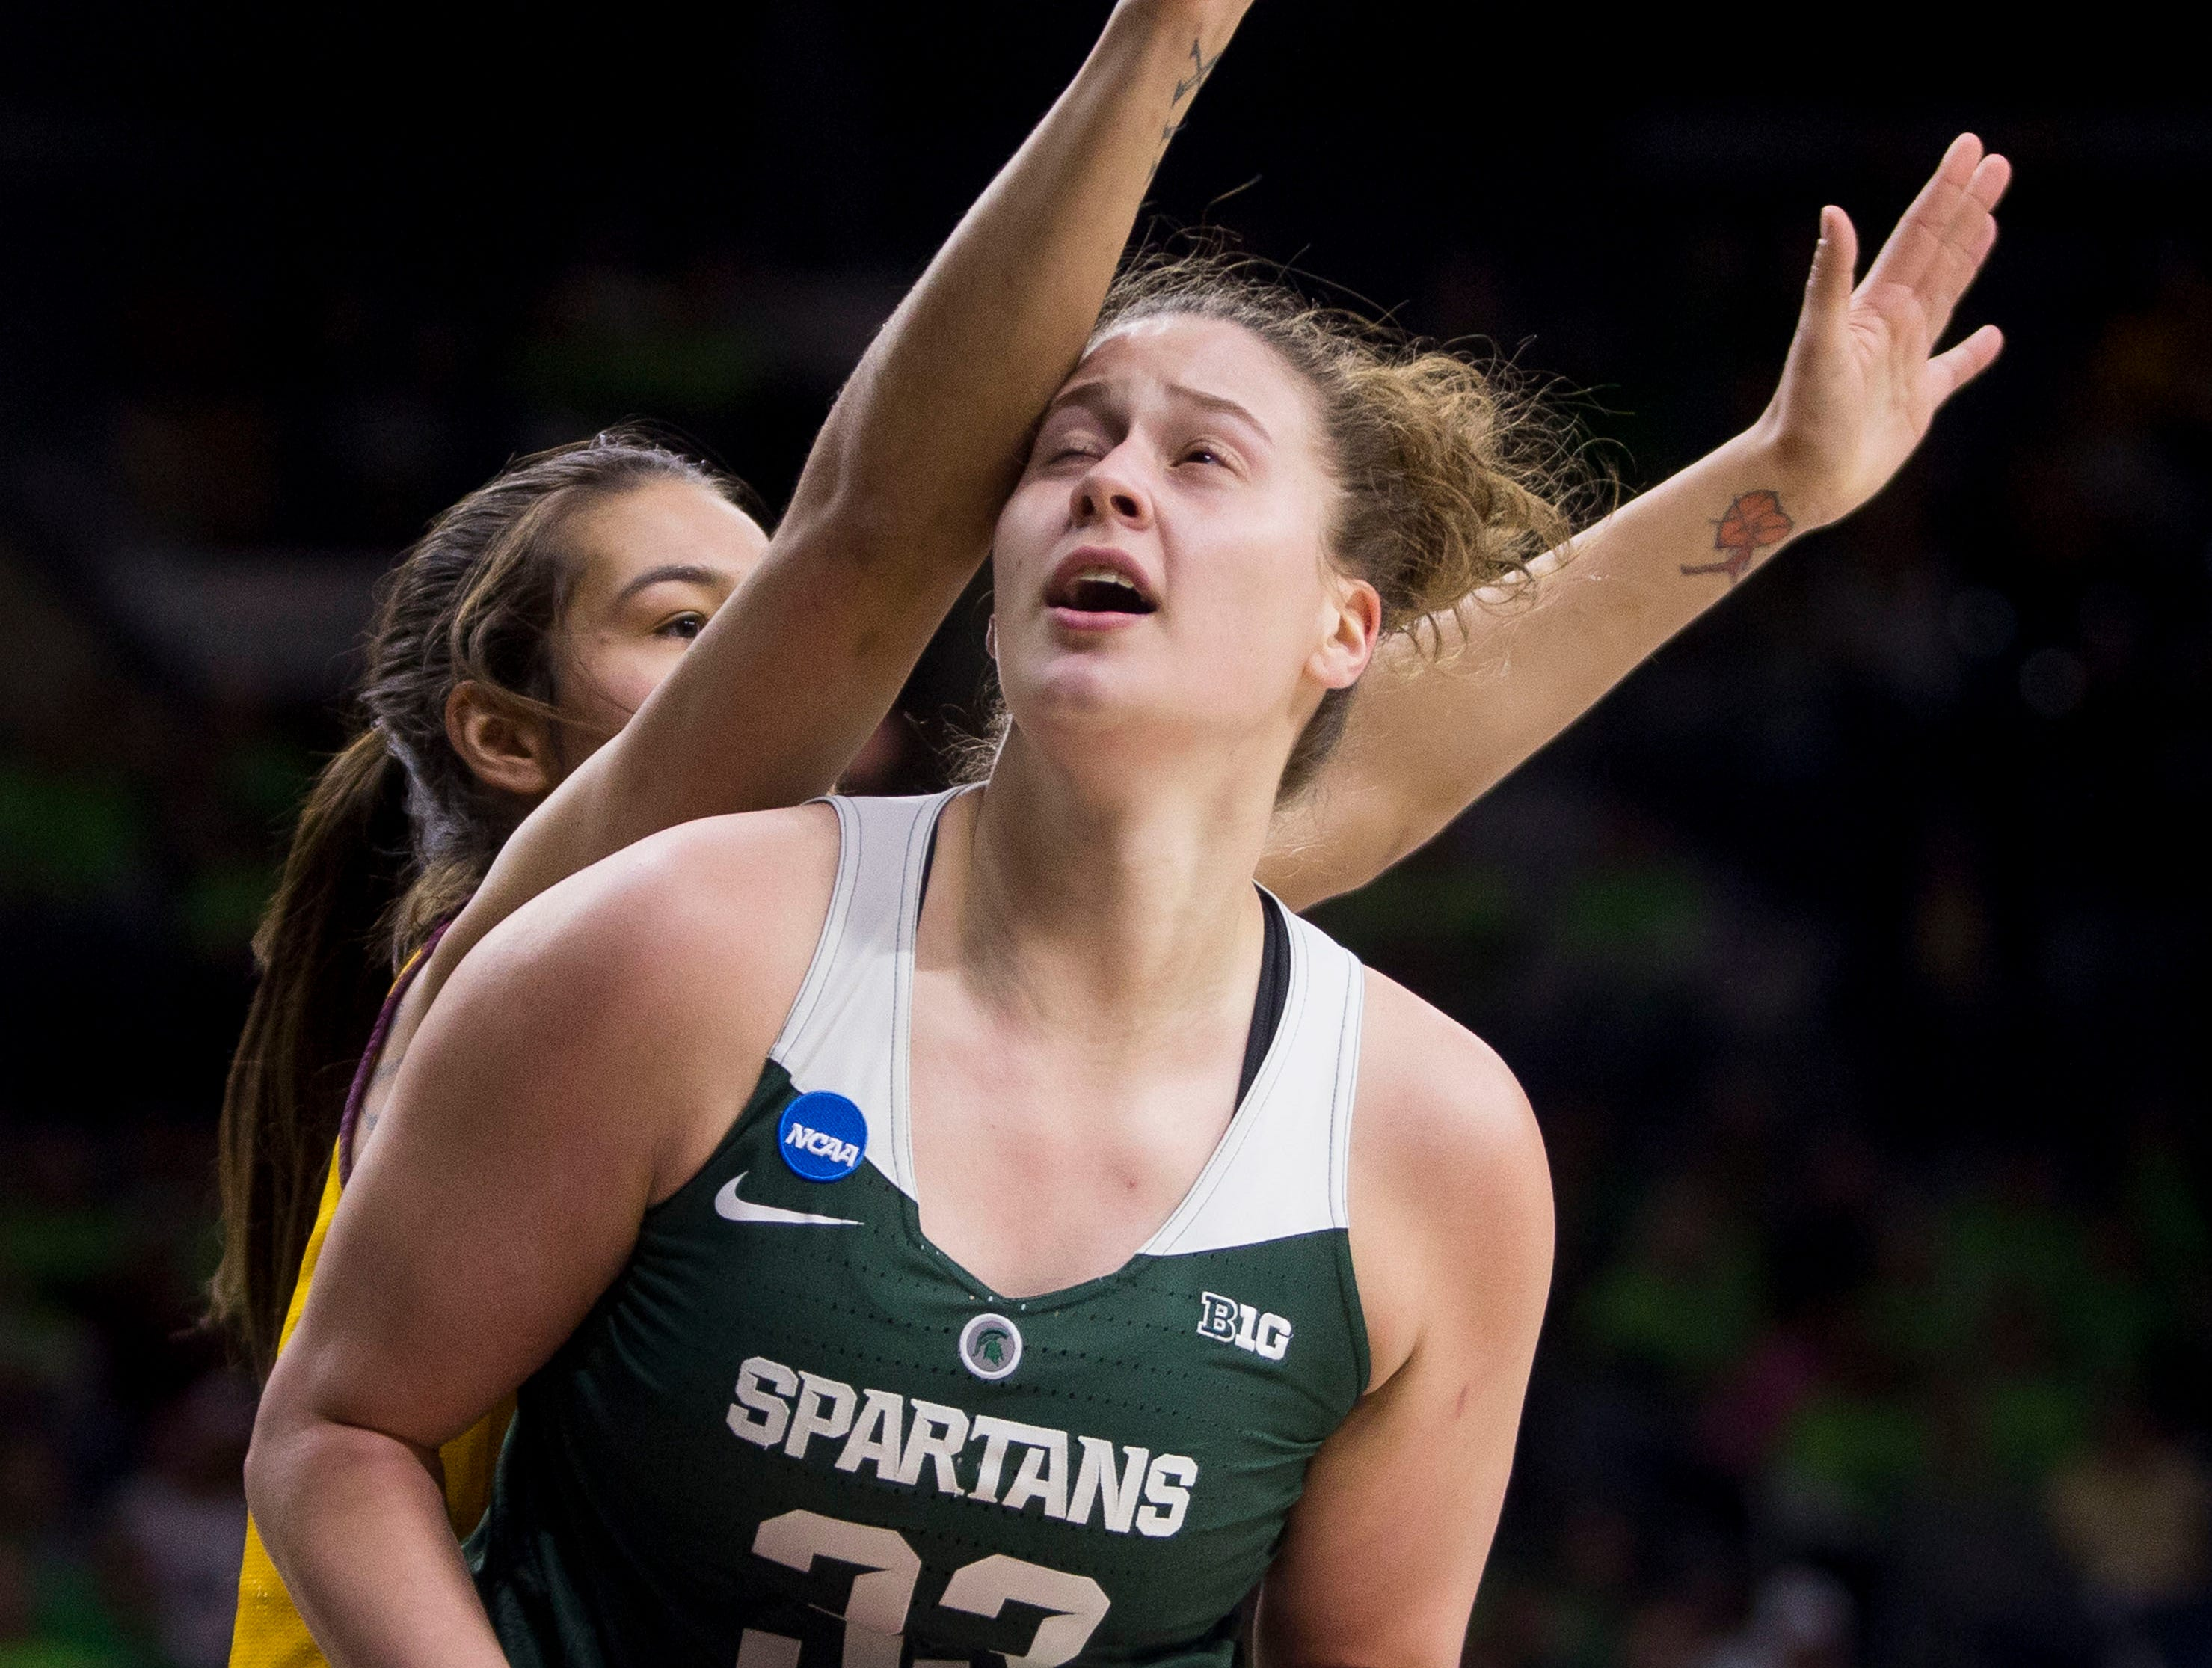 Michigan State's Jenna Allen (33) looks for a shot with pressure from Central Michigan's Reyna Frost during a first-round game in the NCAA women's college basketball tournament in South Bend, Indiana, Saturday, March 23, 2019.